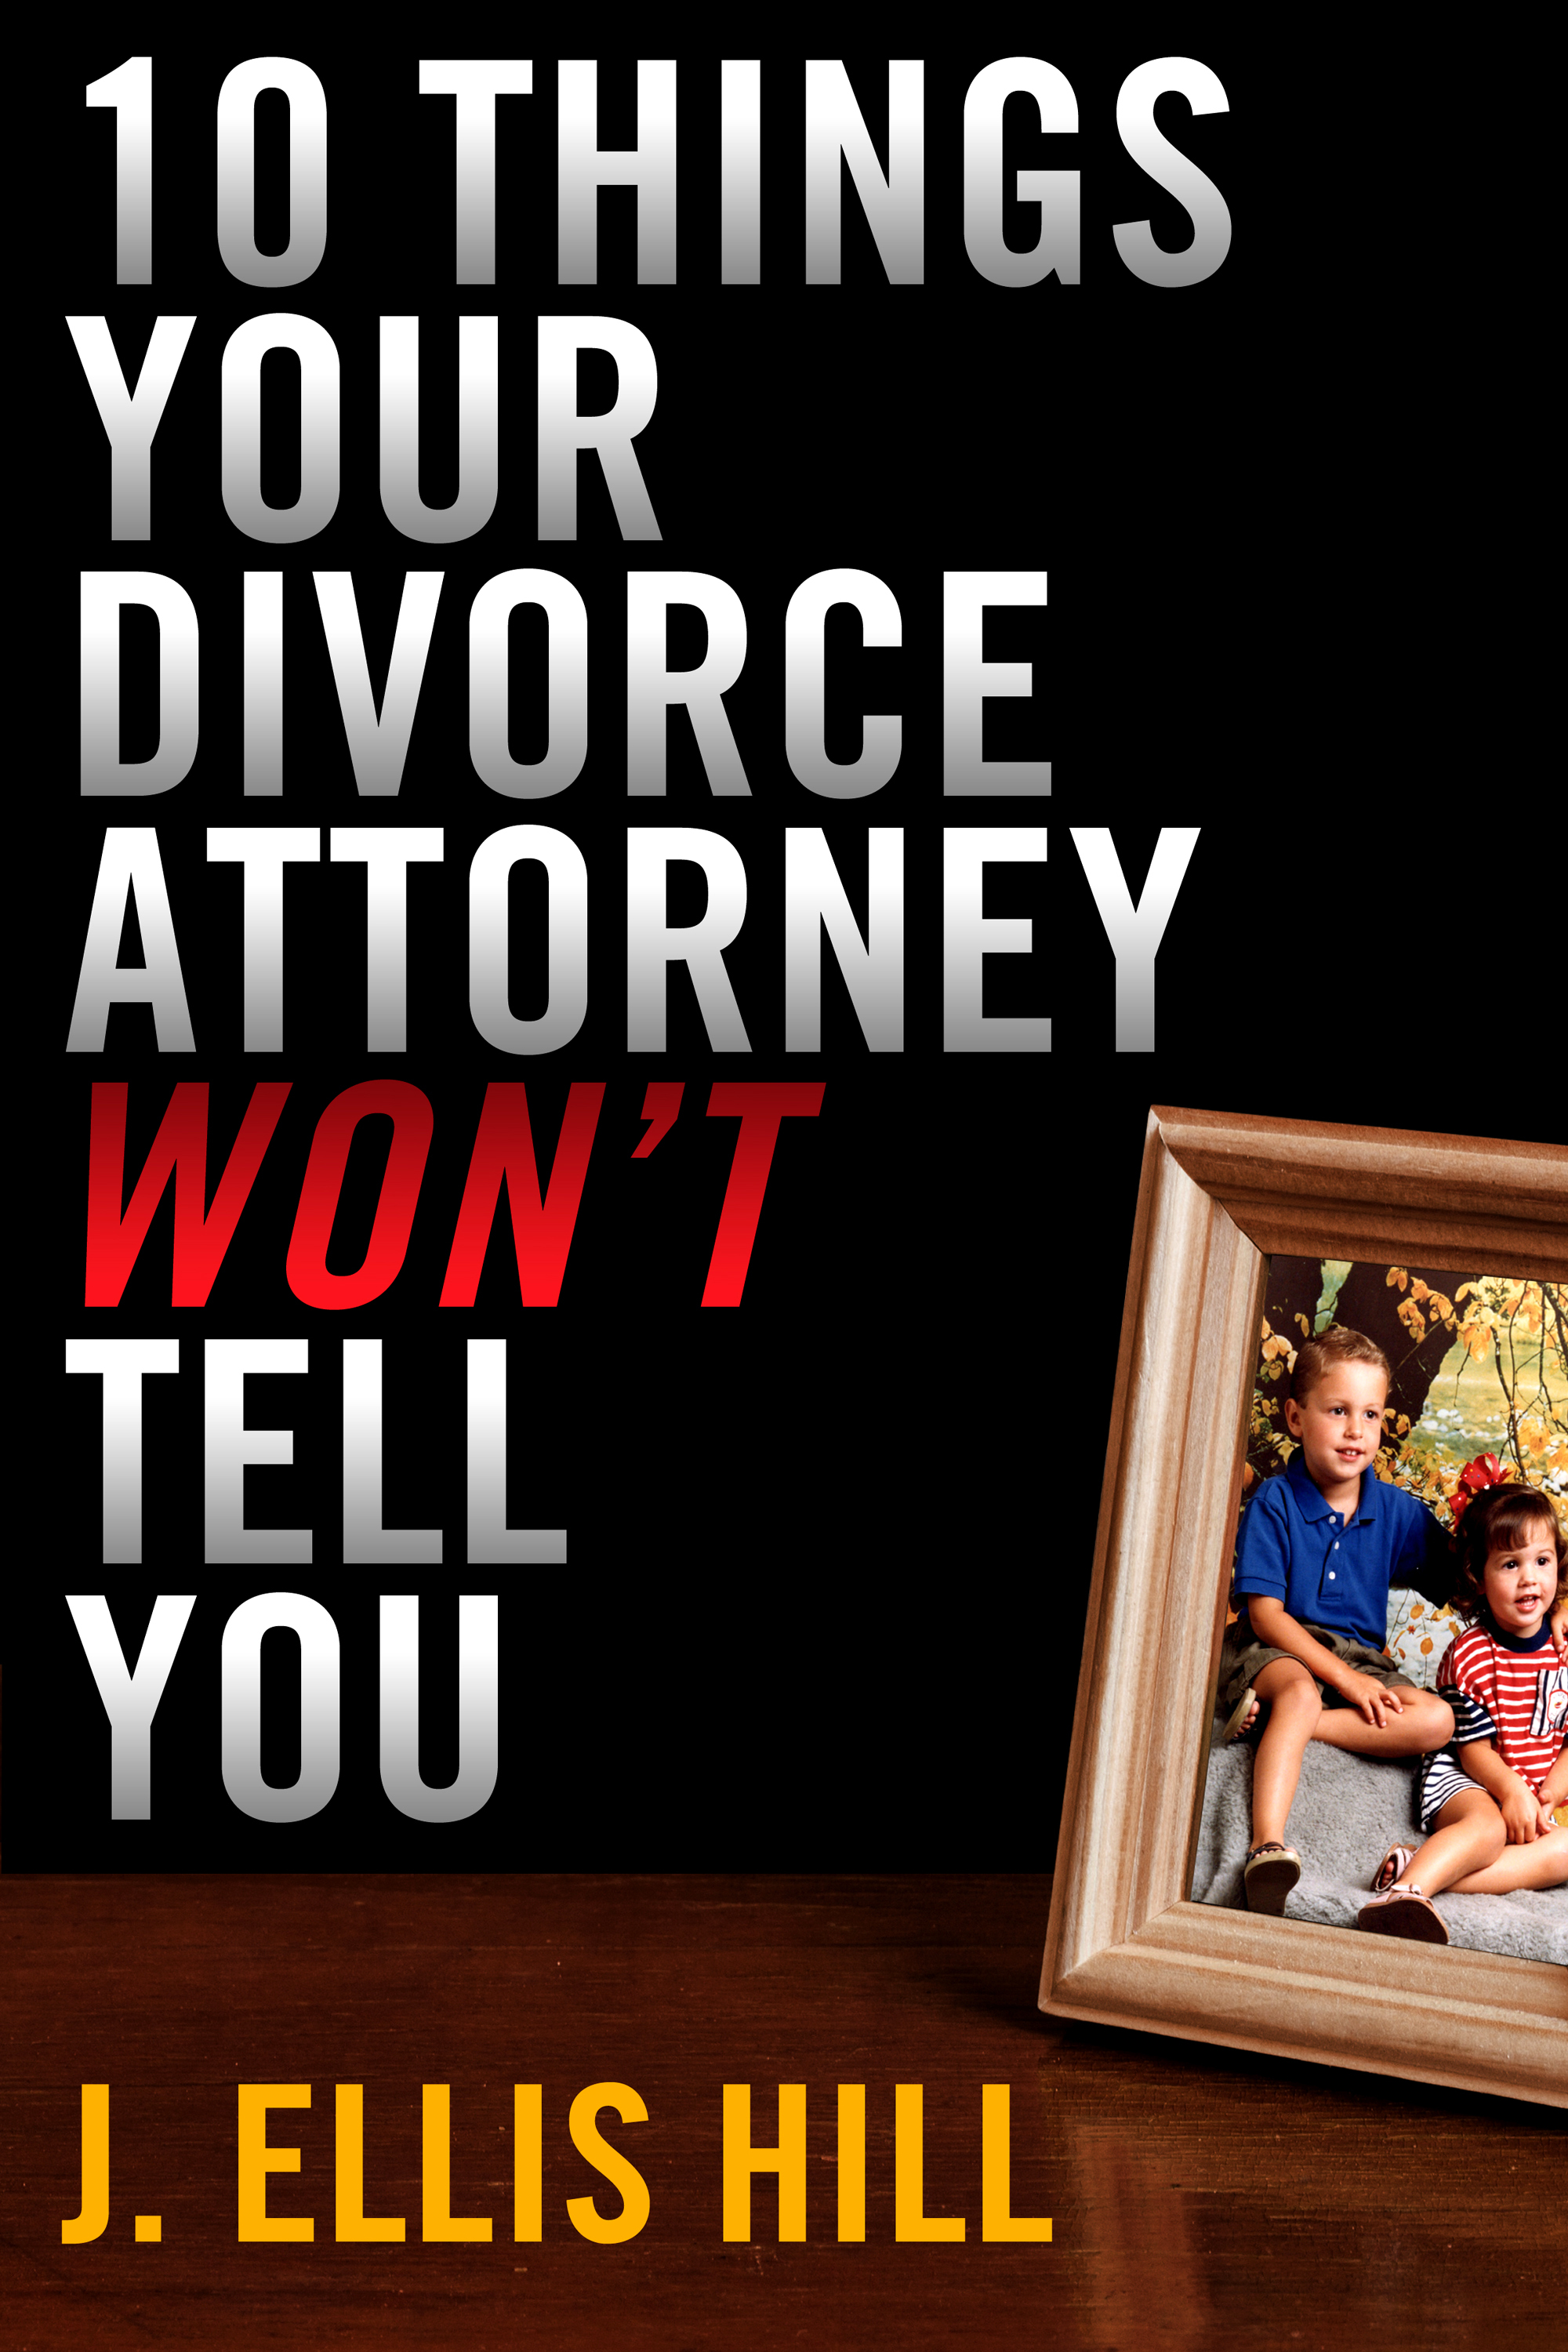 10 Things Your Divorce Attorney Won't Tell You